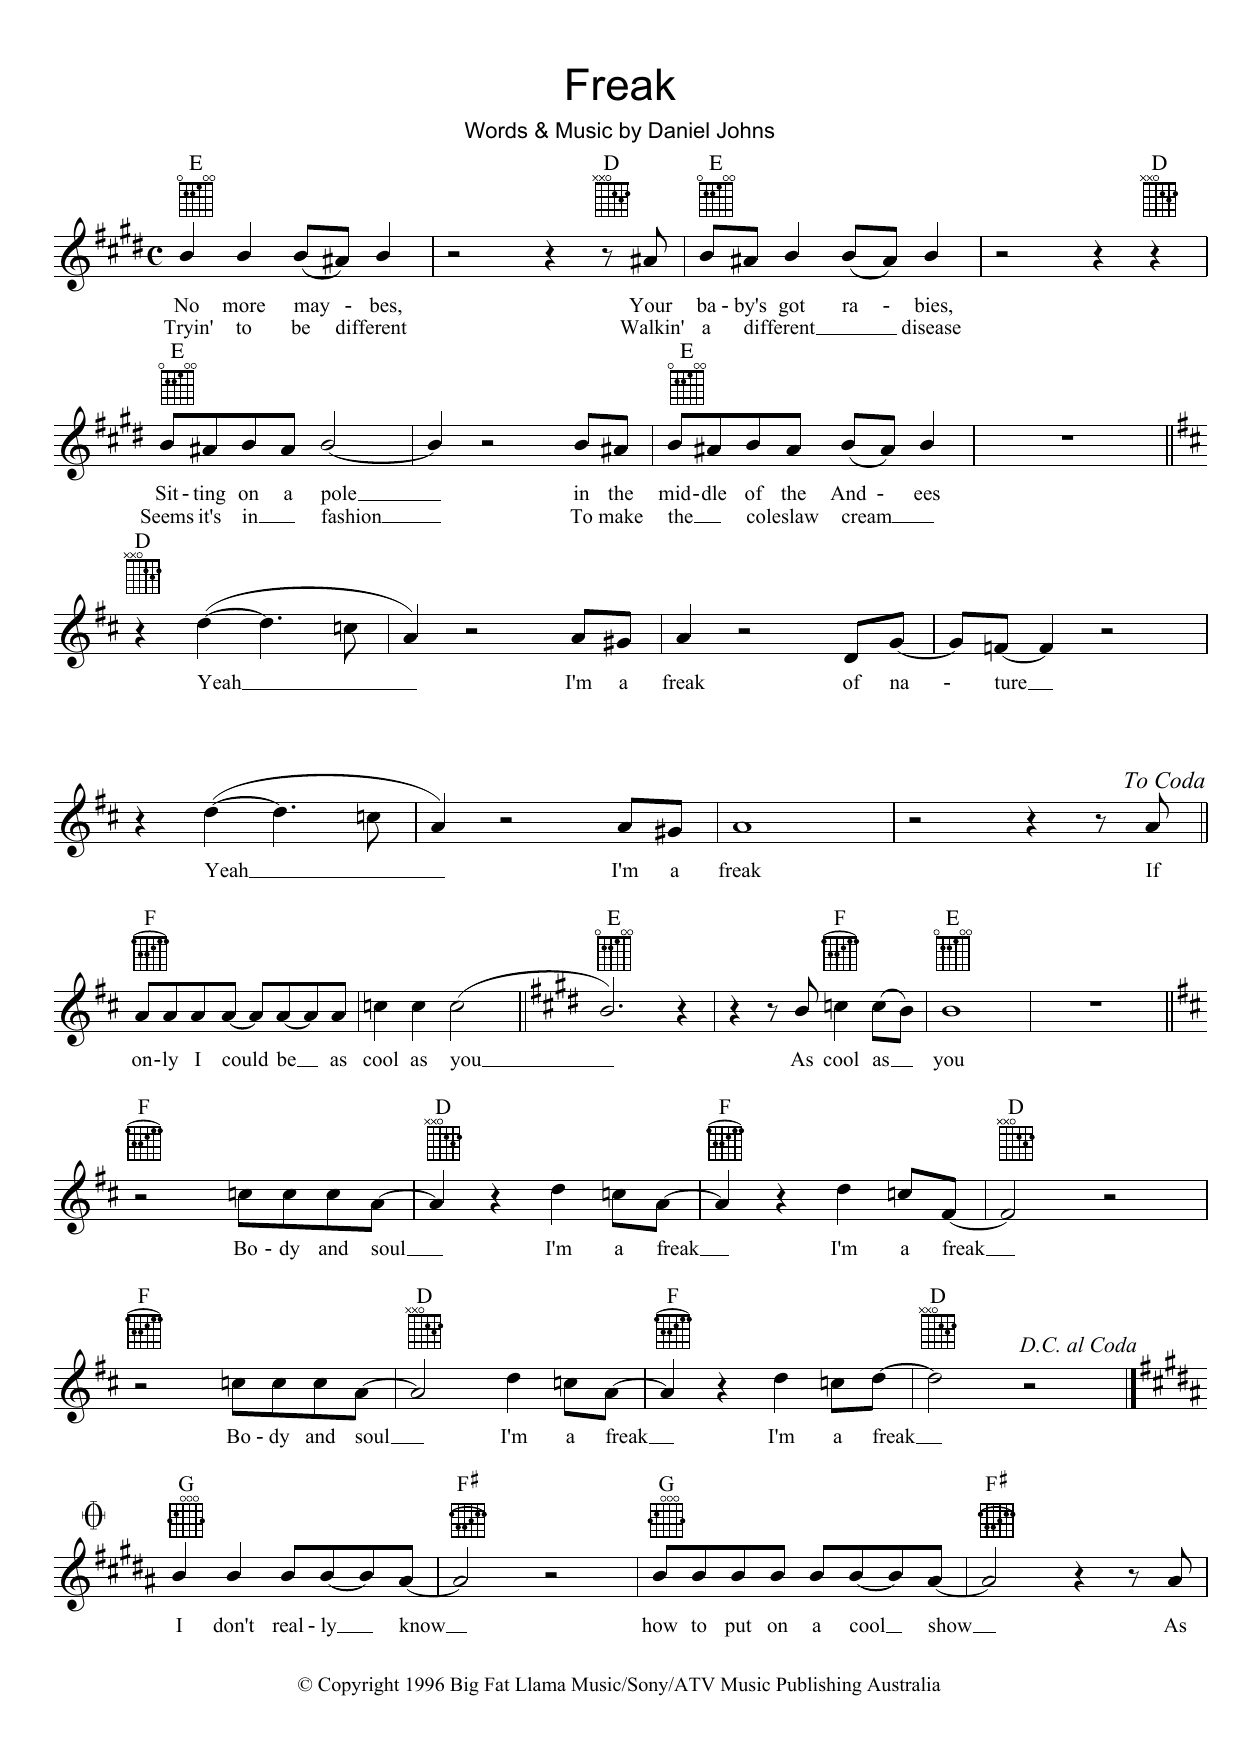 Freak Sheet Music